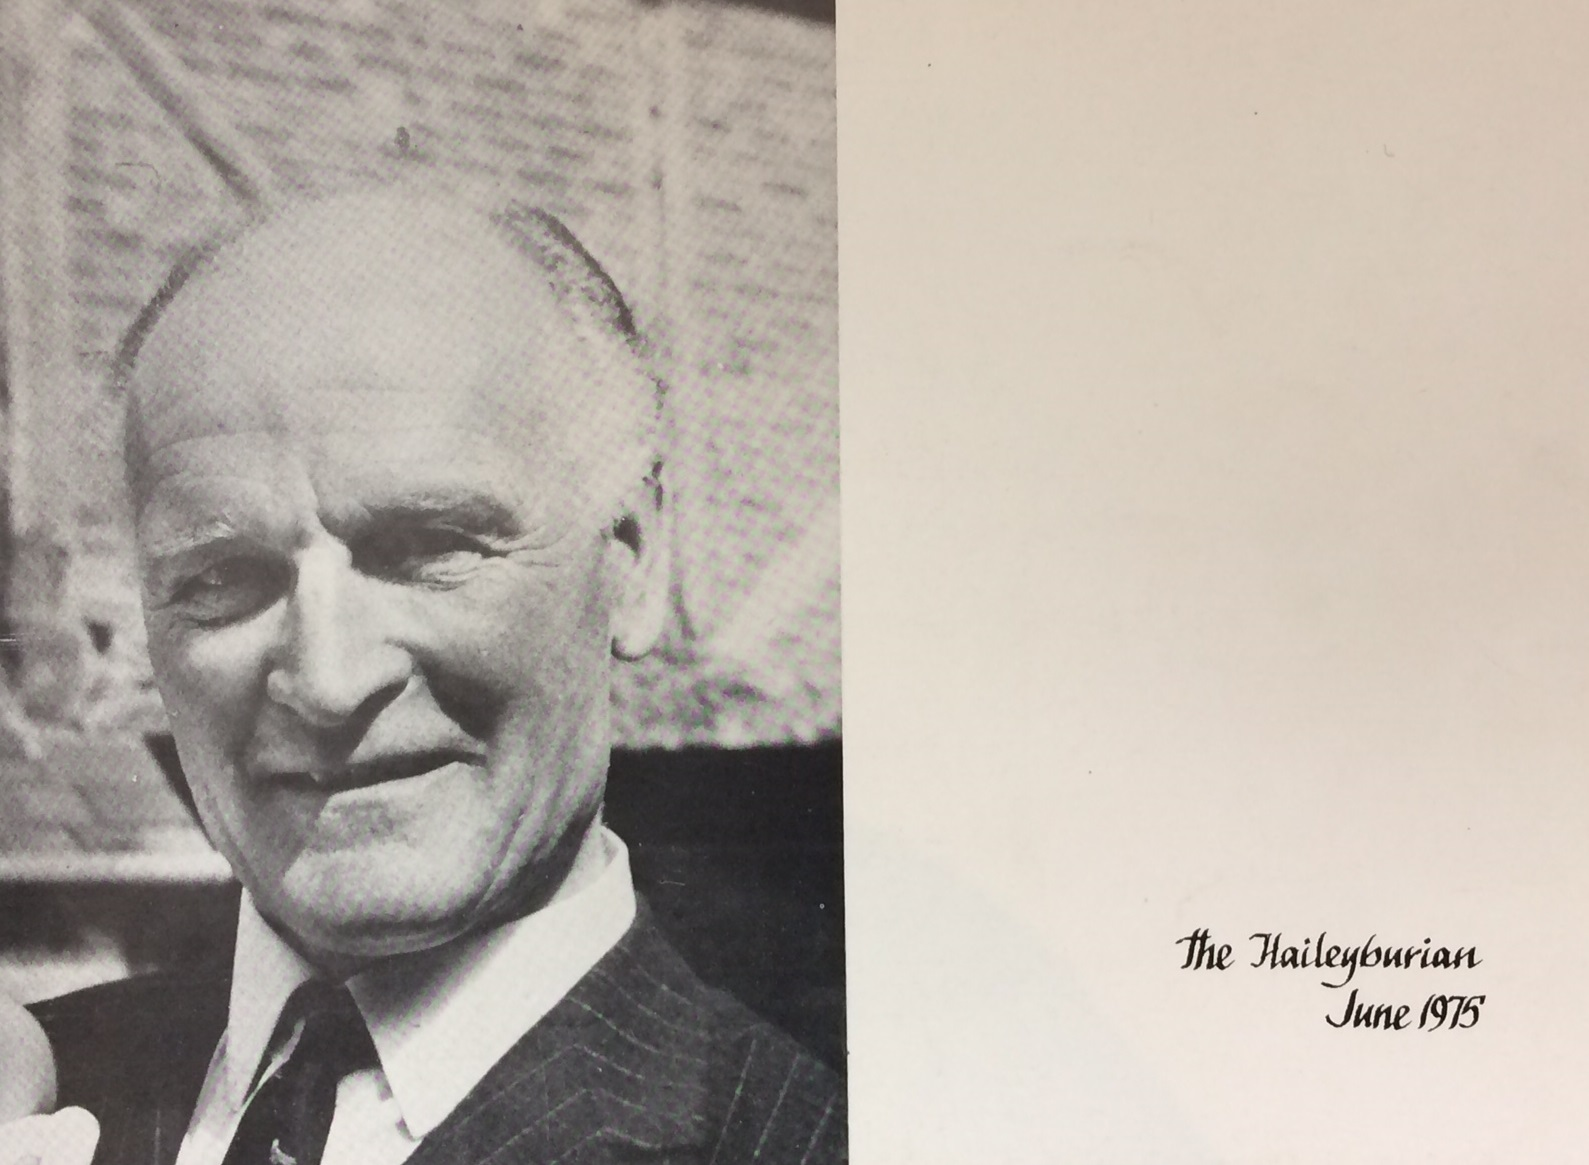 A Dramatic Week at Haileybury in 1975 recalled